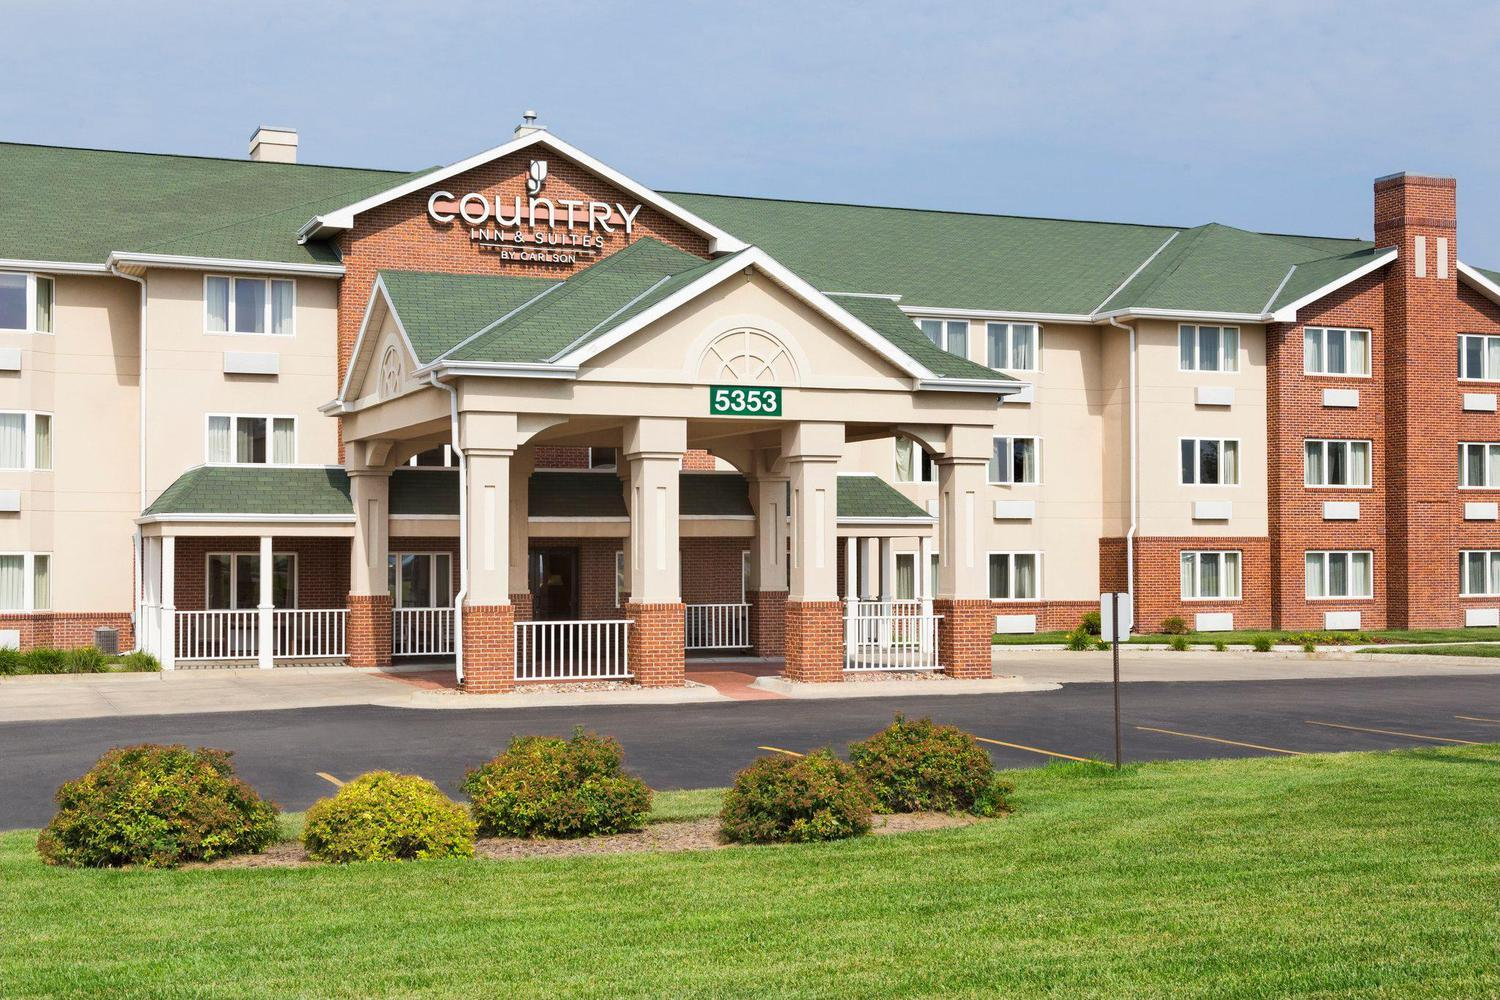 stay interstate hor lnkts suites pinch marriott feat travel to north hotels closest ne lincoln extended towneplace